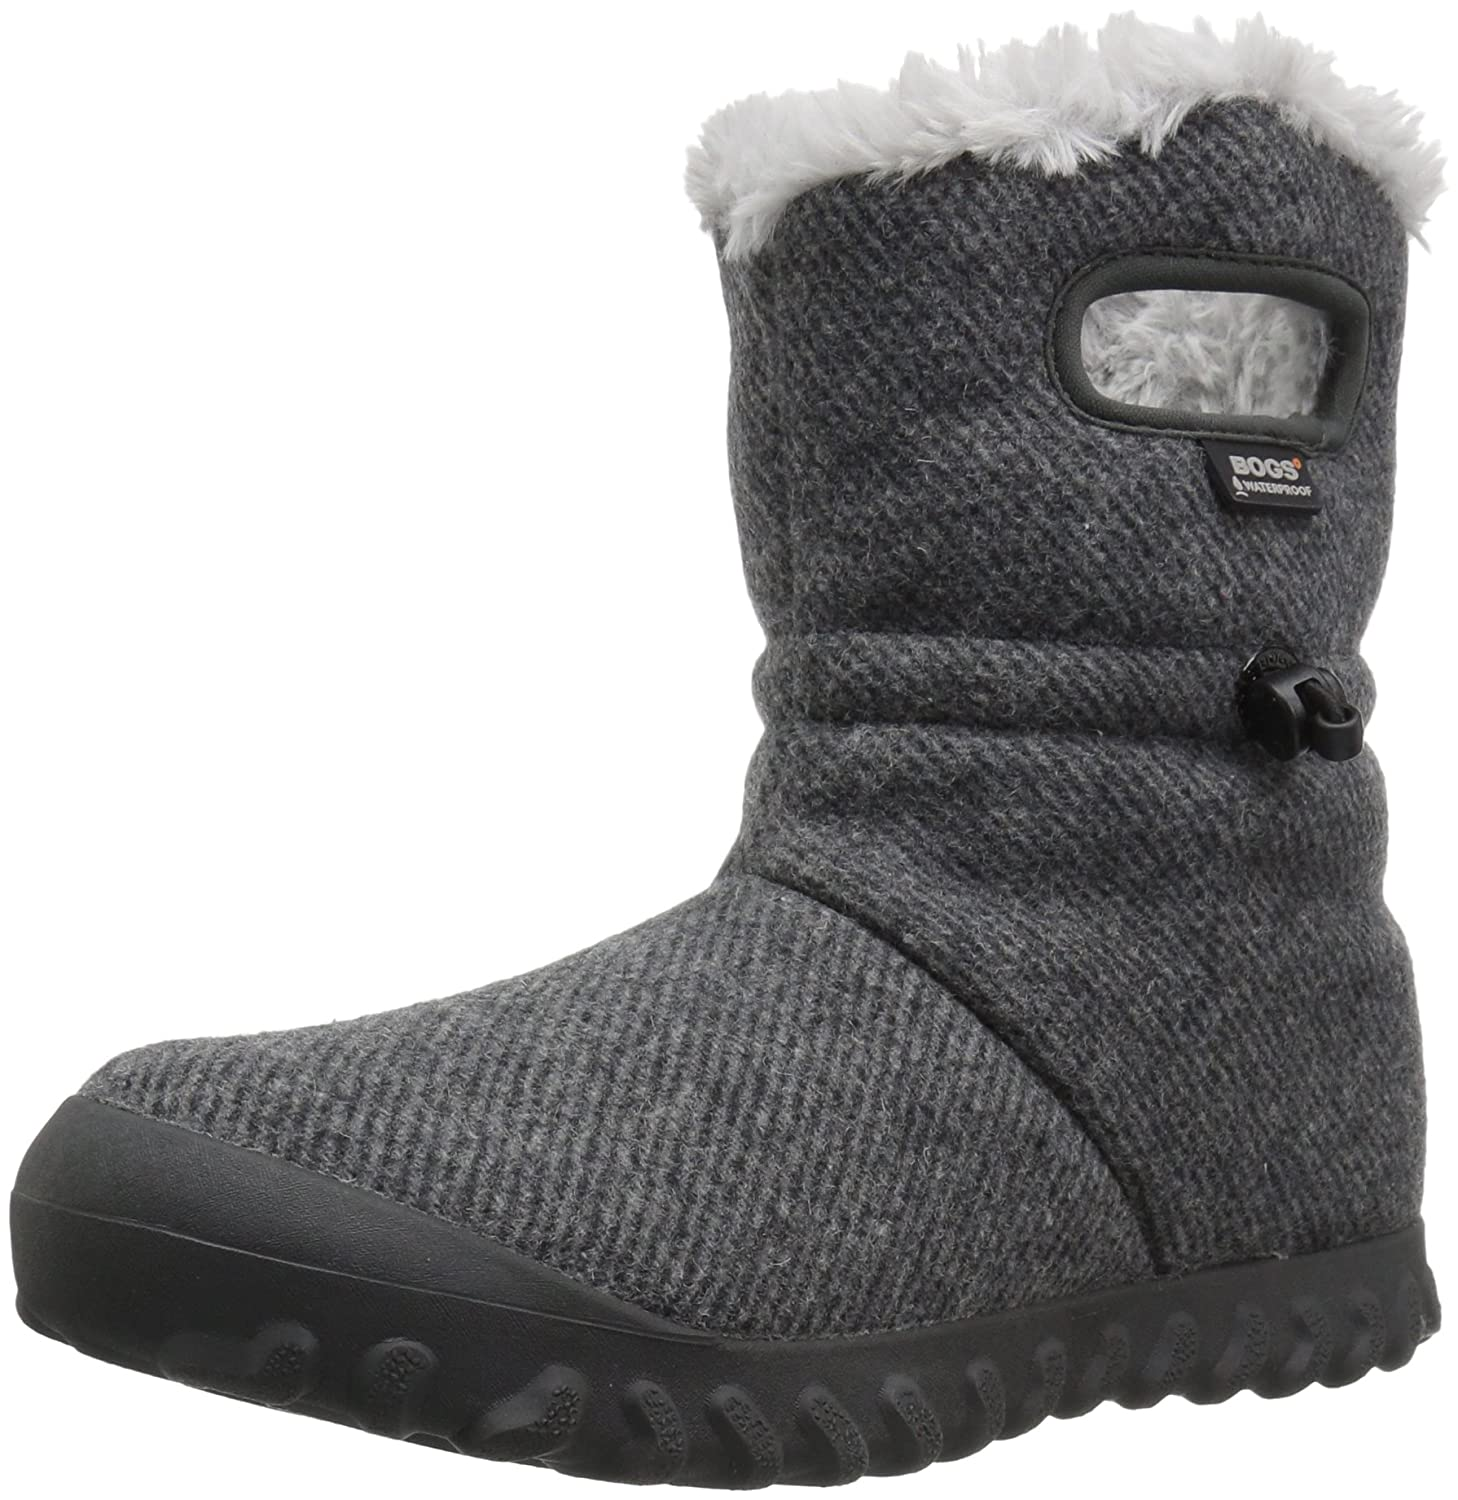 Bogs Women's Bmoc Wool Snow Boot B01MTT40B1 6 B(M) US|Charcoal